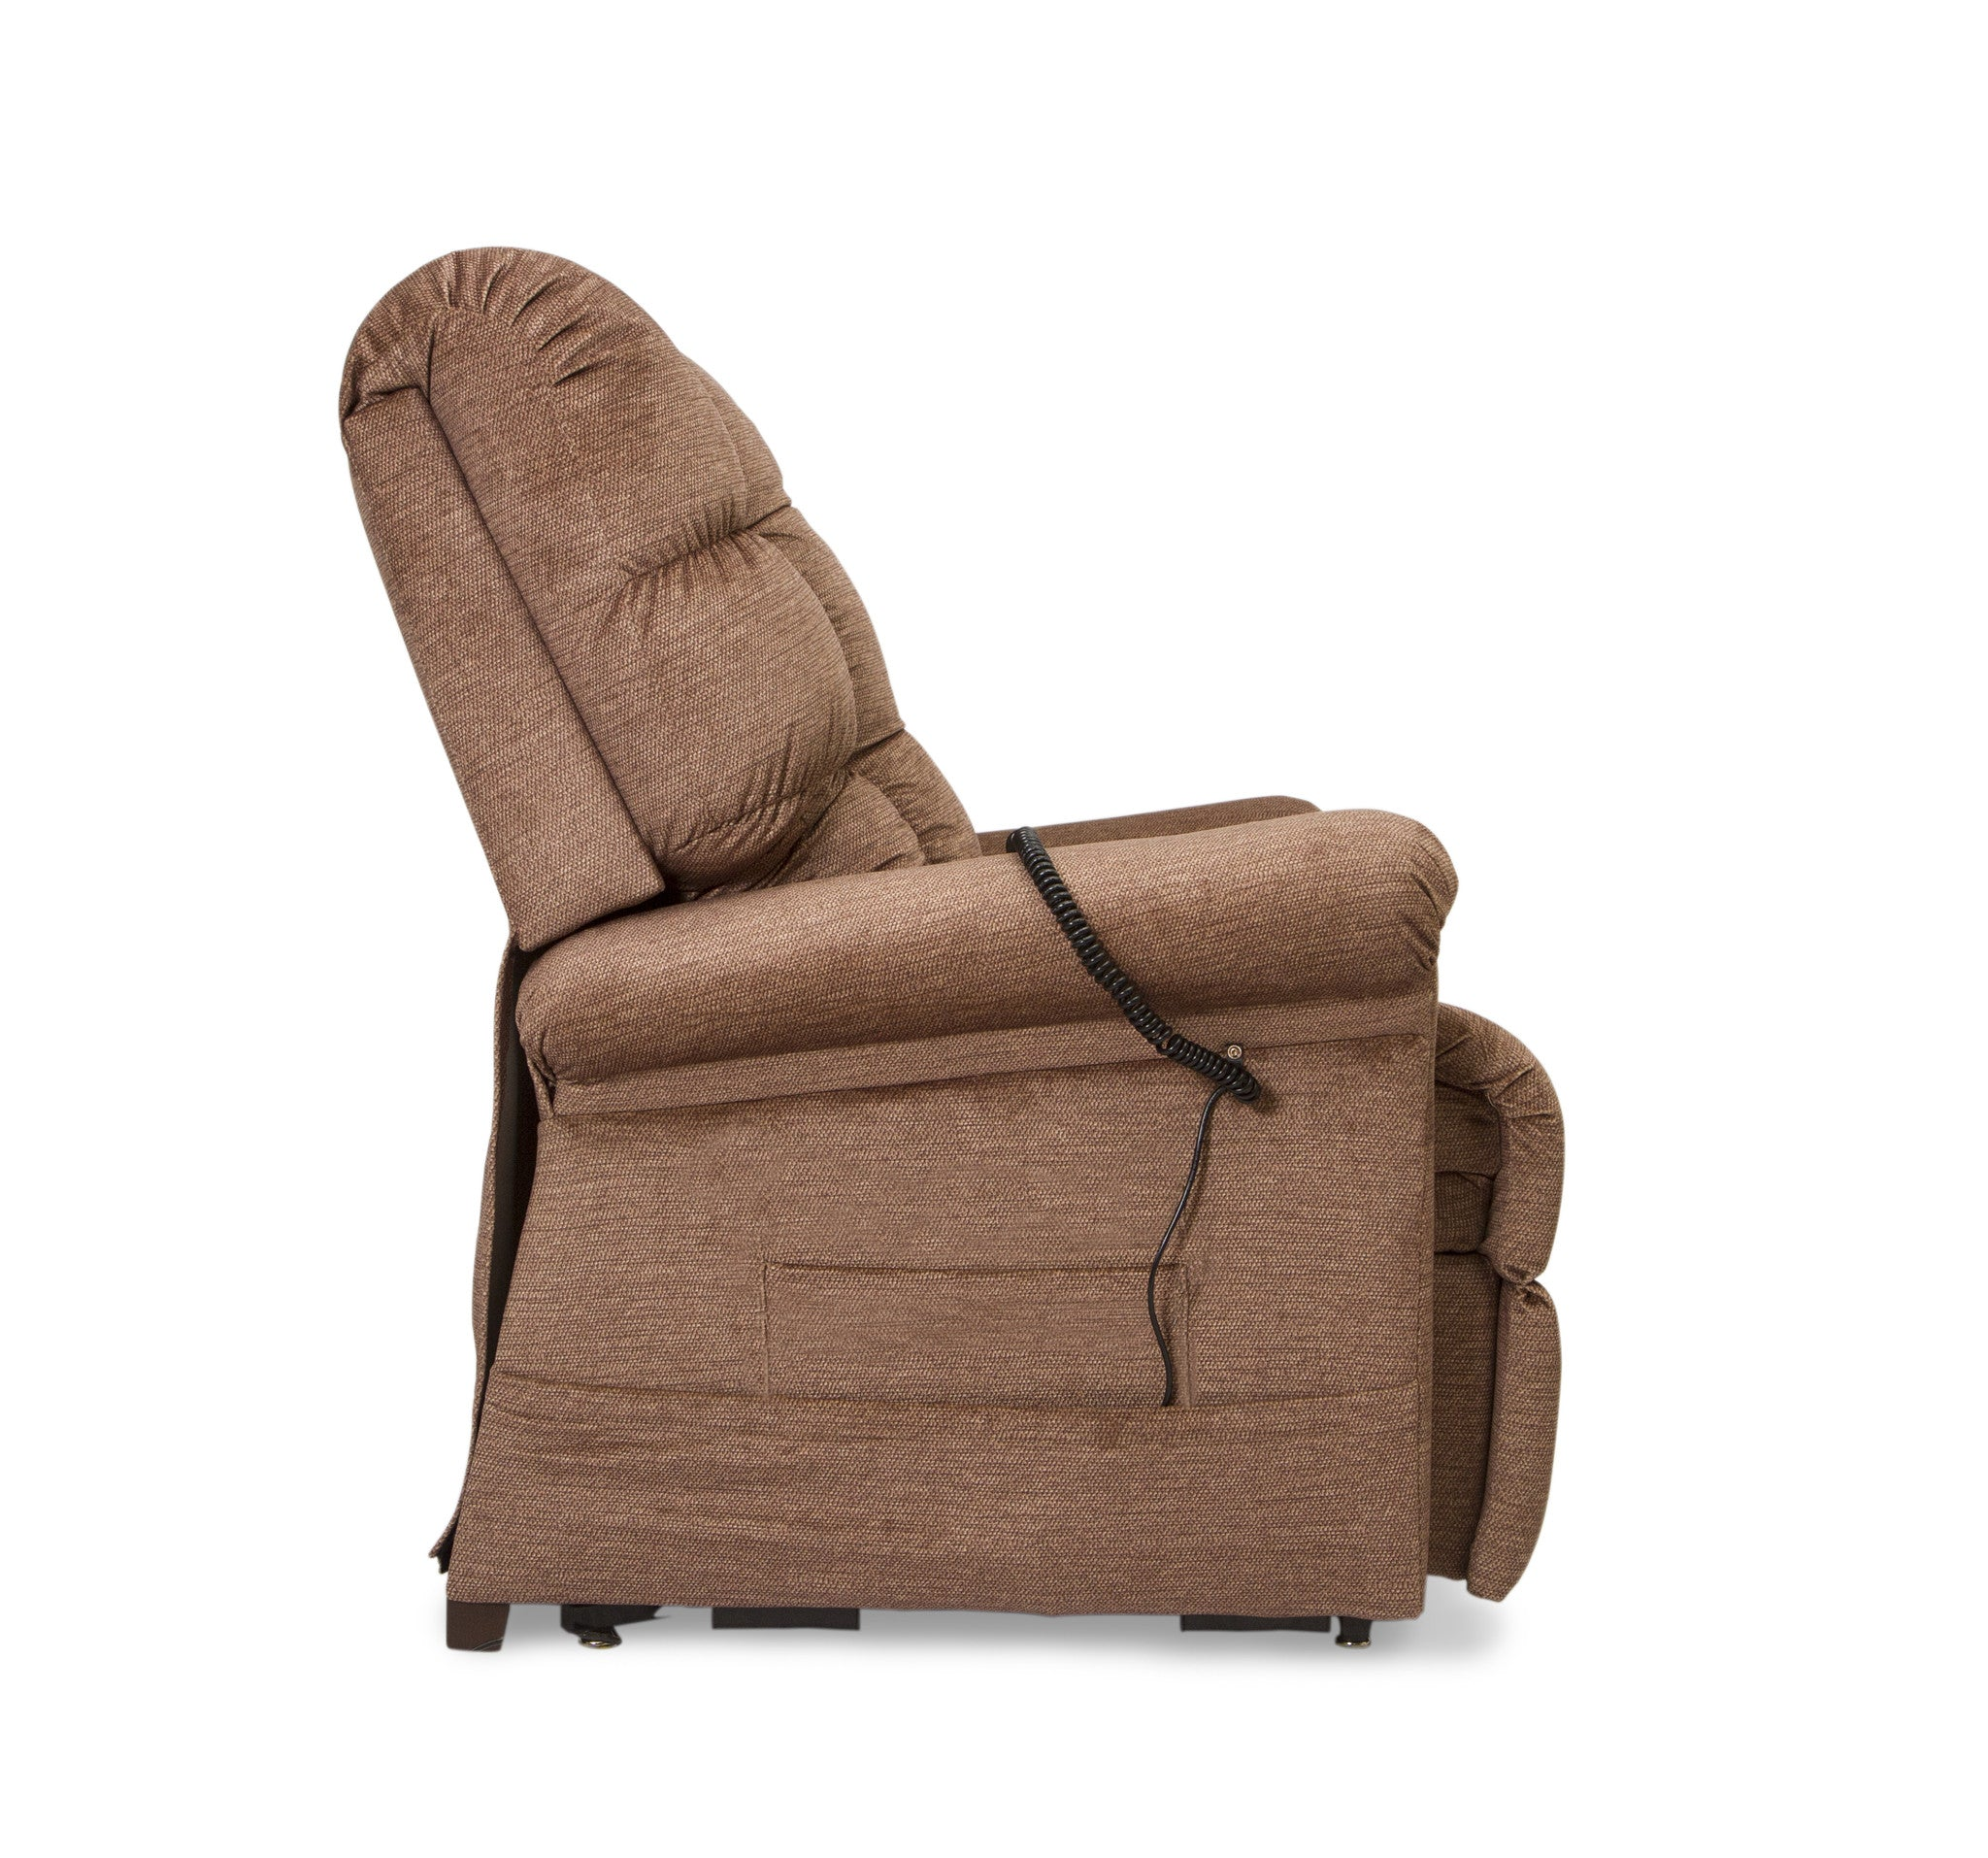 ... Pride Lift Chair Recliner LC580 Oasis Infinity   Multiple Fabrics ...